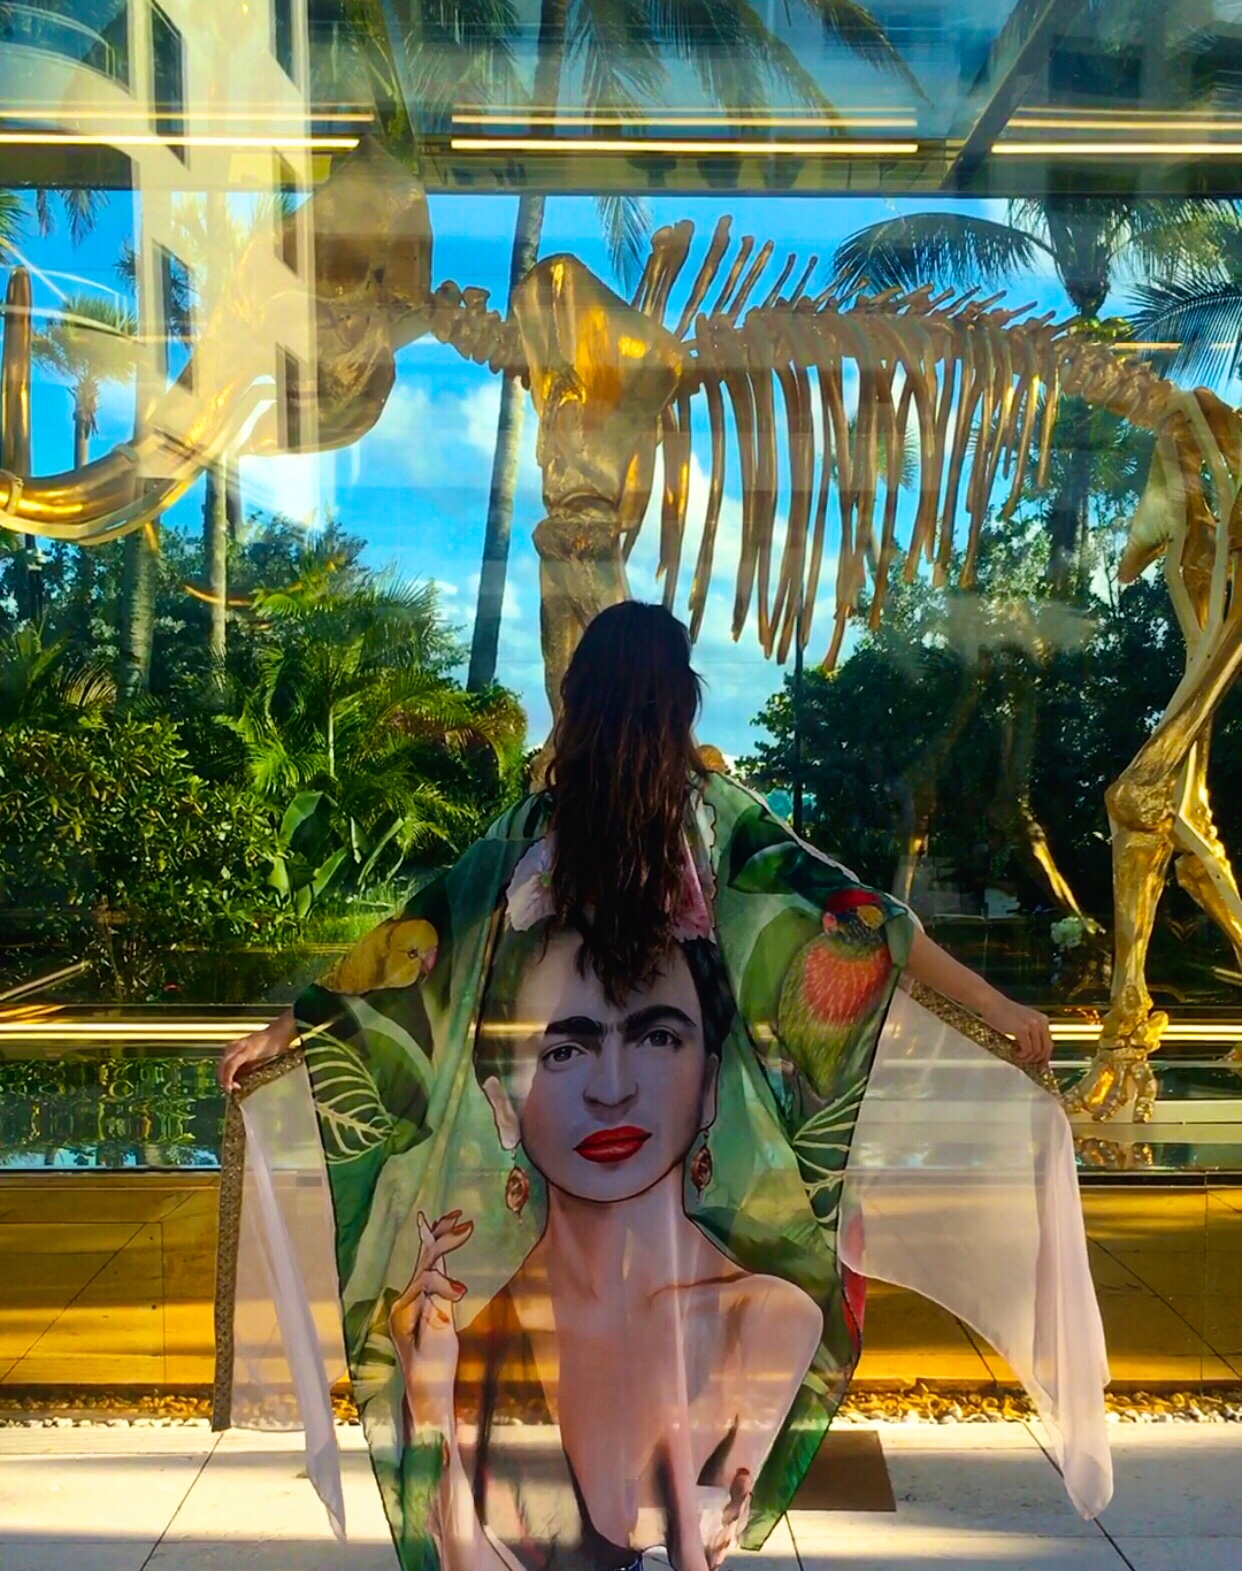 Awaken your fantasies at the most dazzling and culturally enchanted resort in North America | FAENA | MIAMI, FL